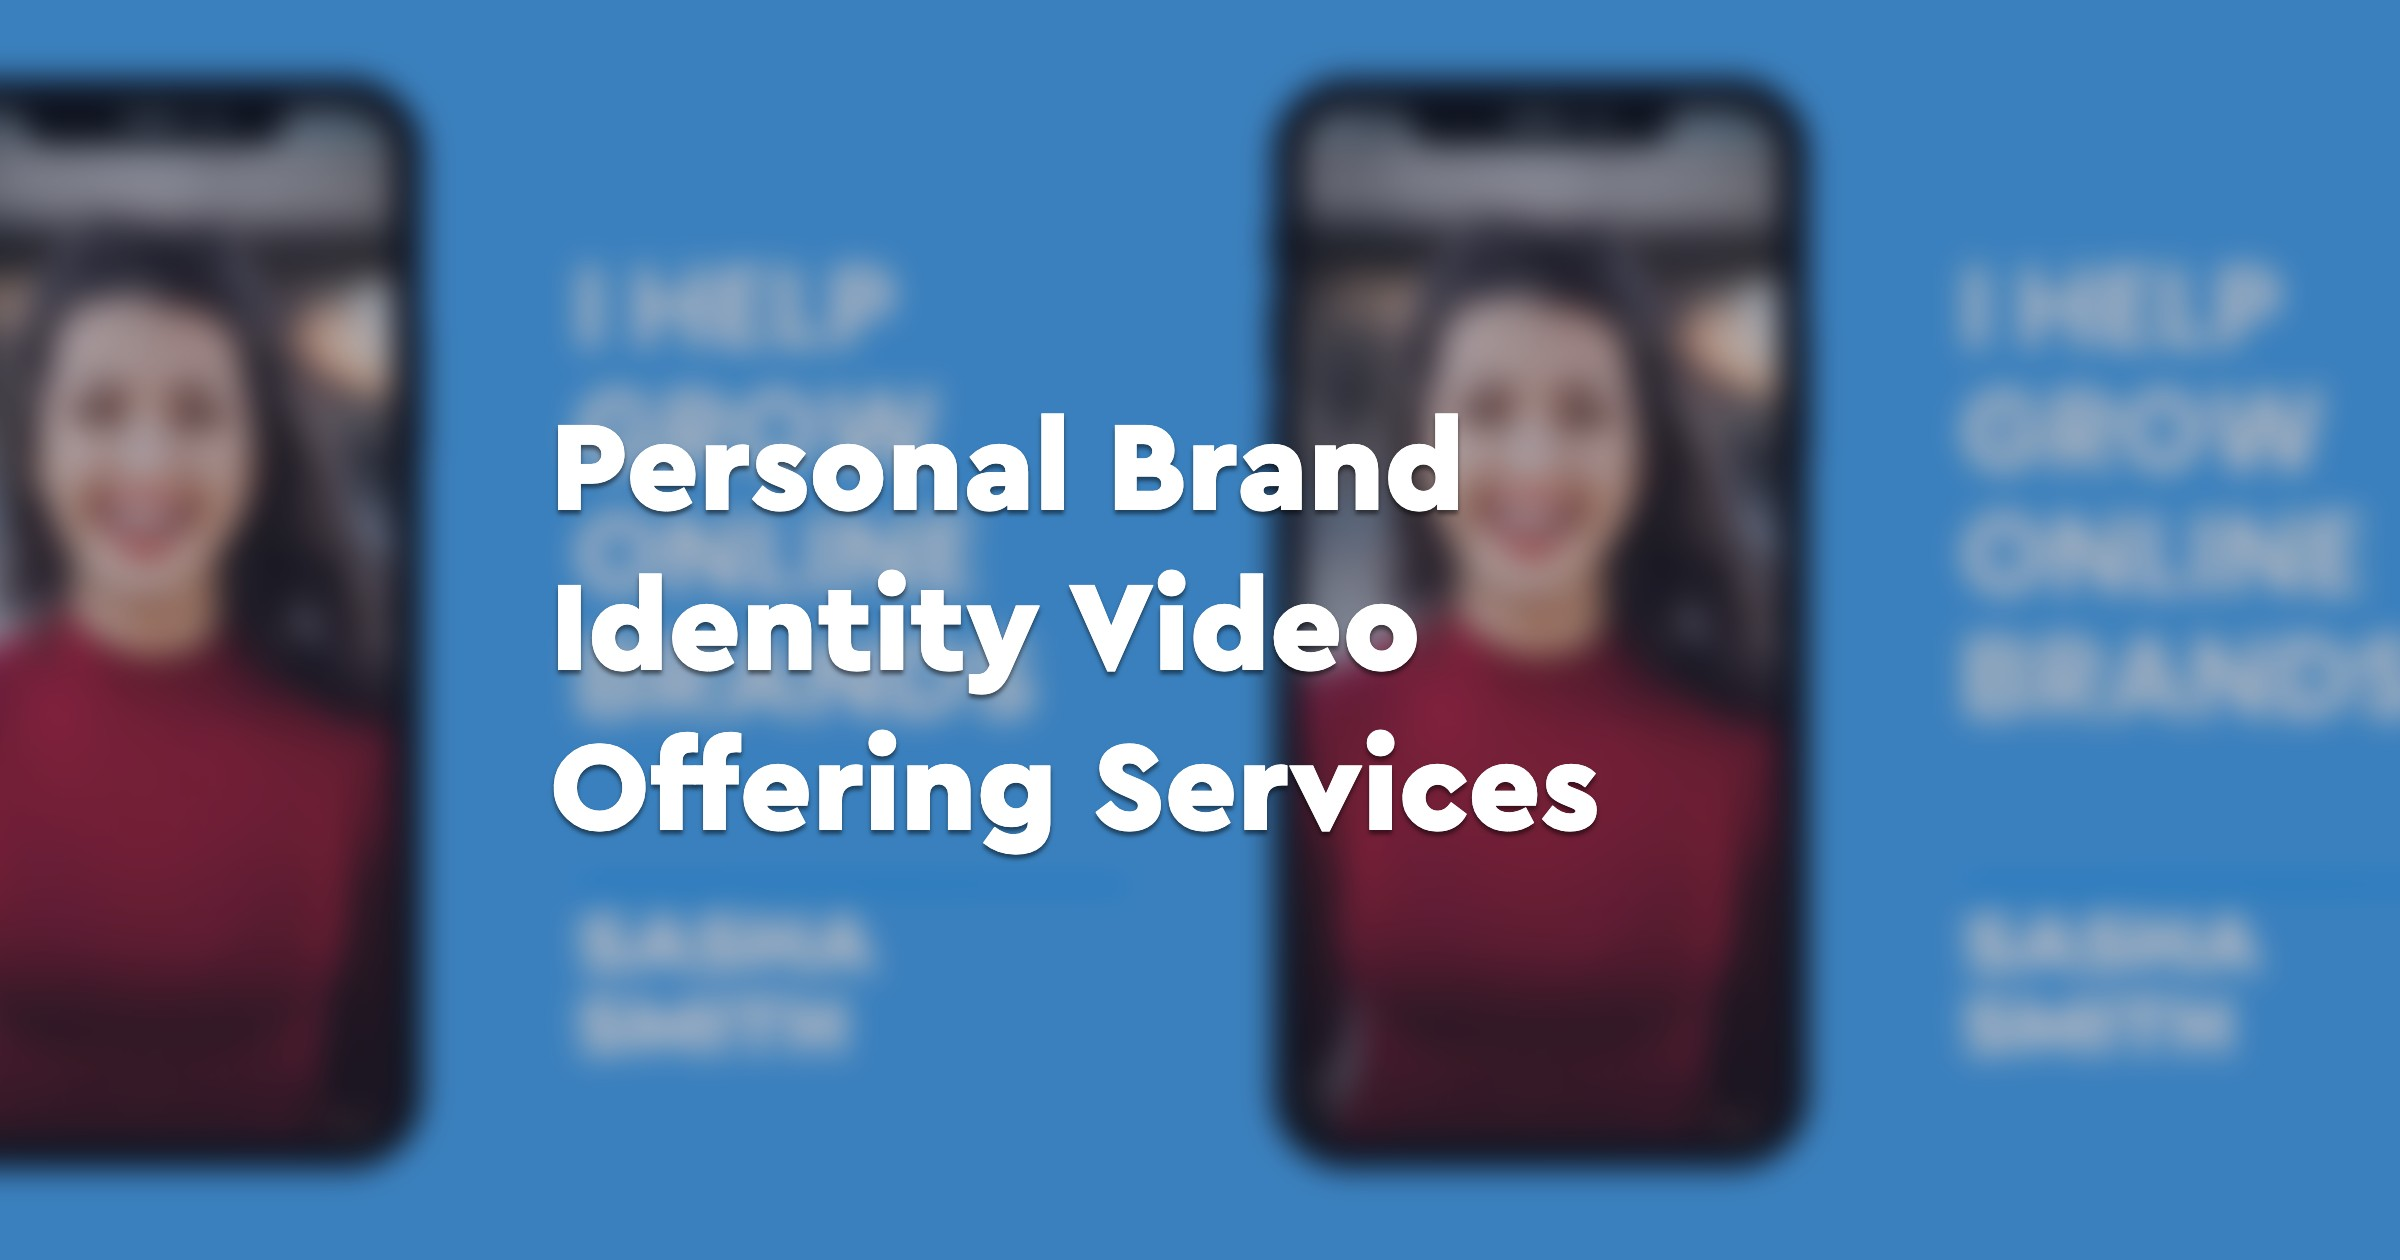 Personal Brand Identity Video Offering Services